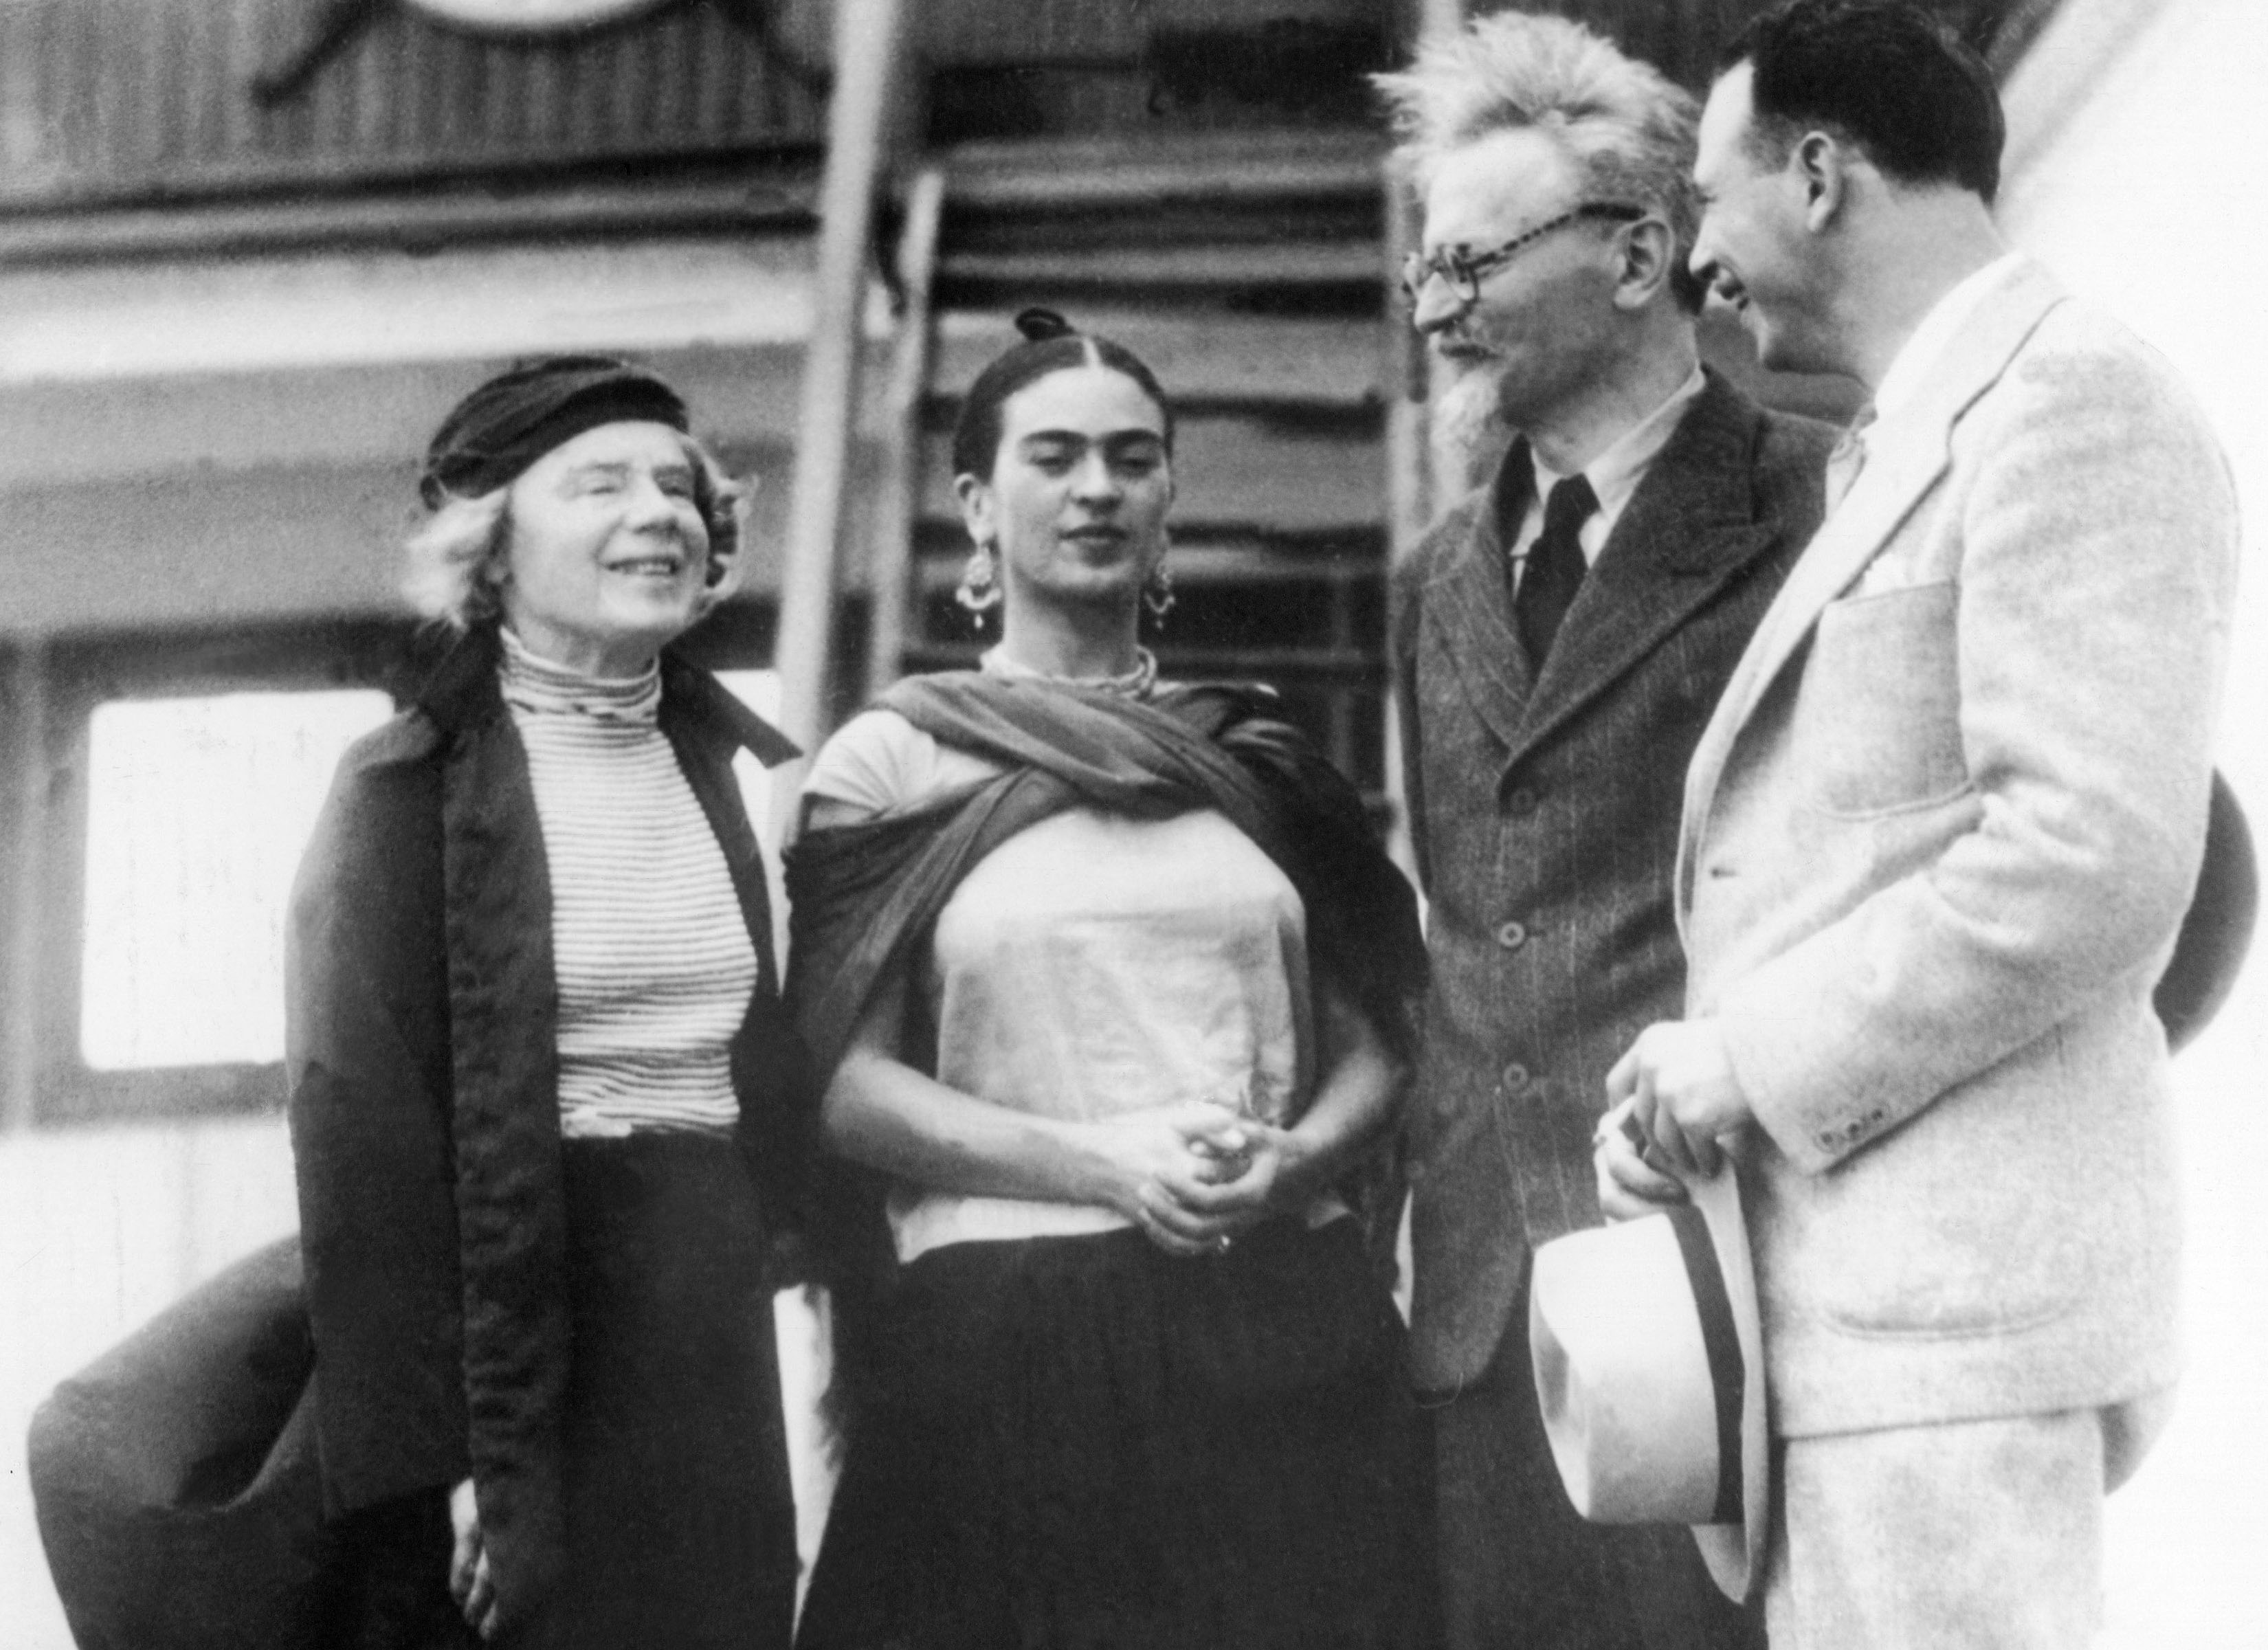 9 January 1937: Russian Marxist Leon Trotsky (second from right) and his wife, Natalia Sedova (far left), are greeted by Mexican painter Frida Kahlo and Polish-born Marxist Max Shachtman in Tampico, Mexico, after being deported from Norway. (Photograph by Keystone-France/Gamma-Keystone via Getty Images)